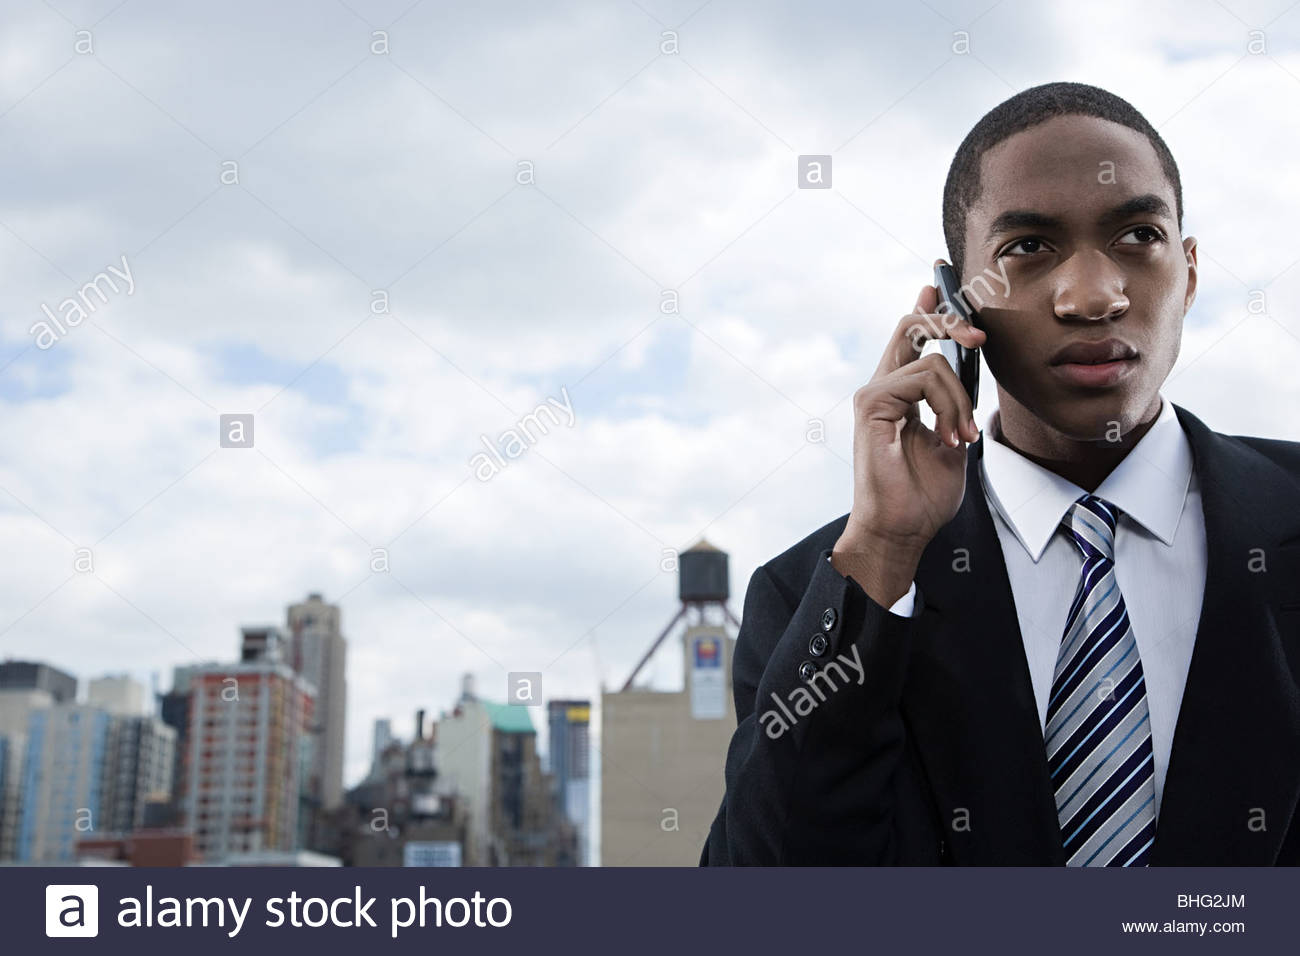 Businessman using cellphone - Stock Image